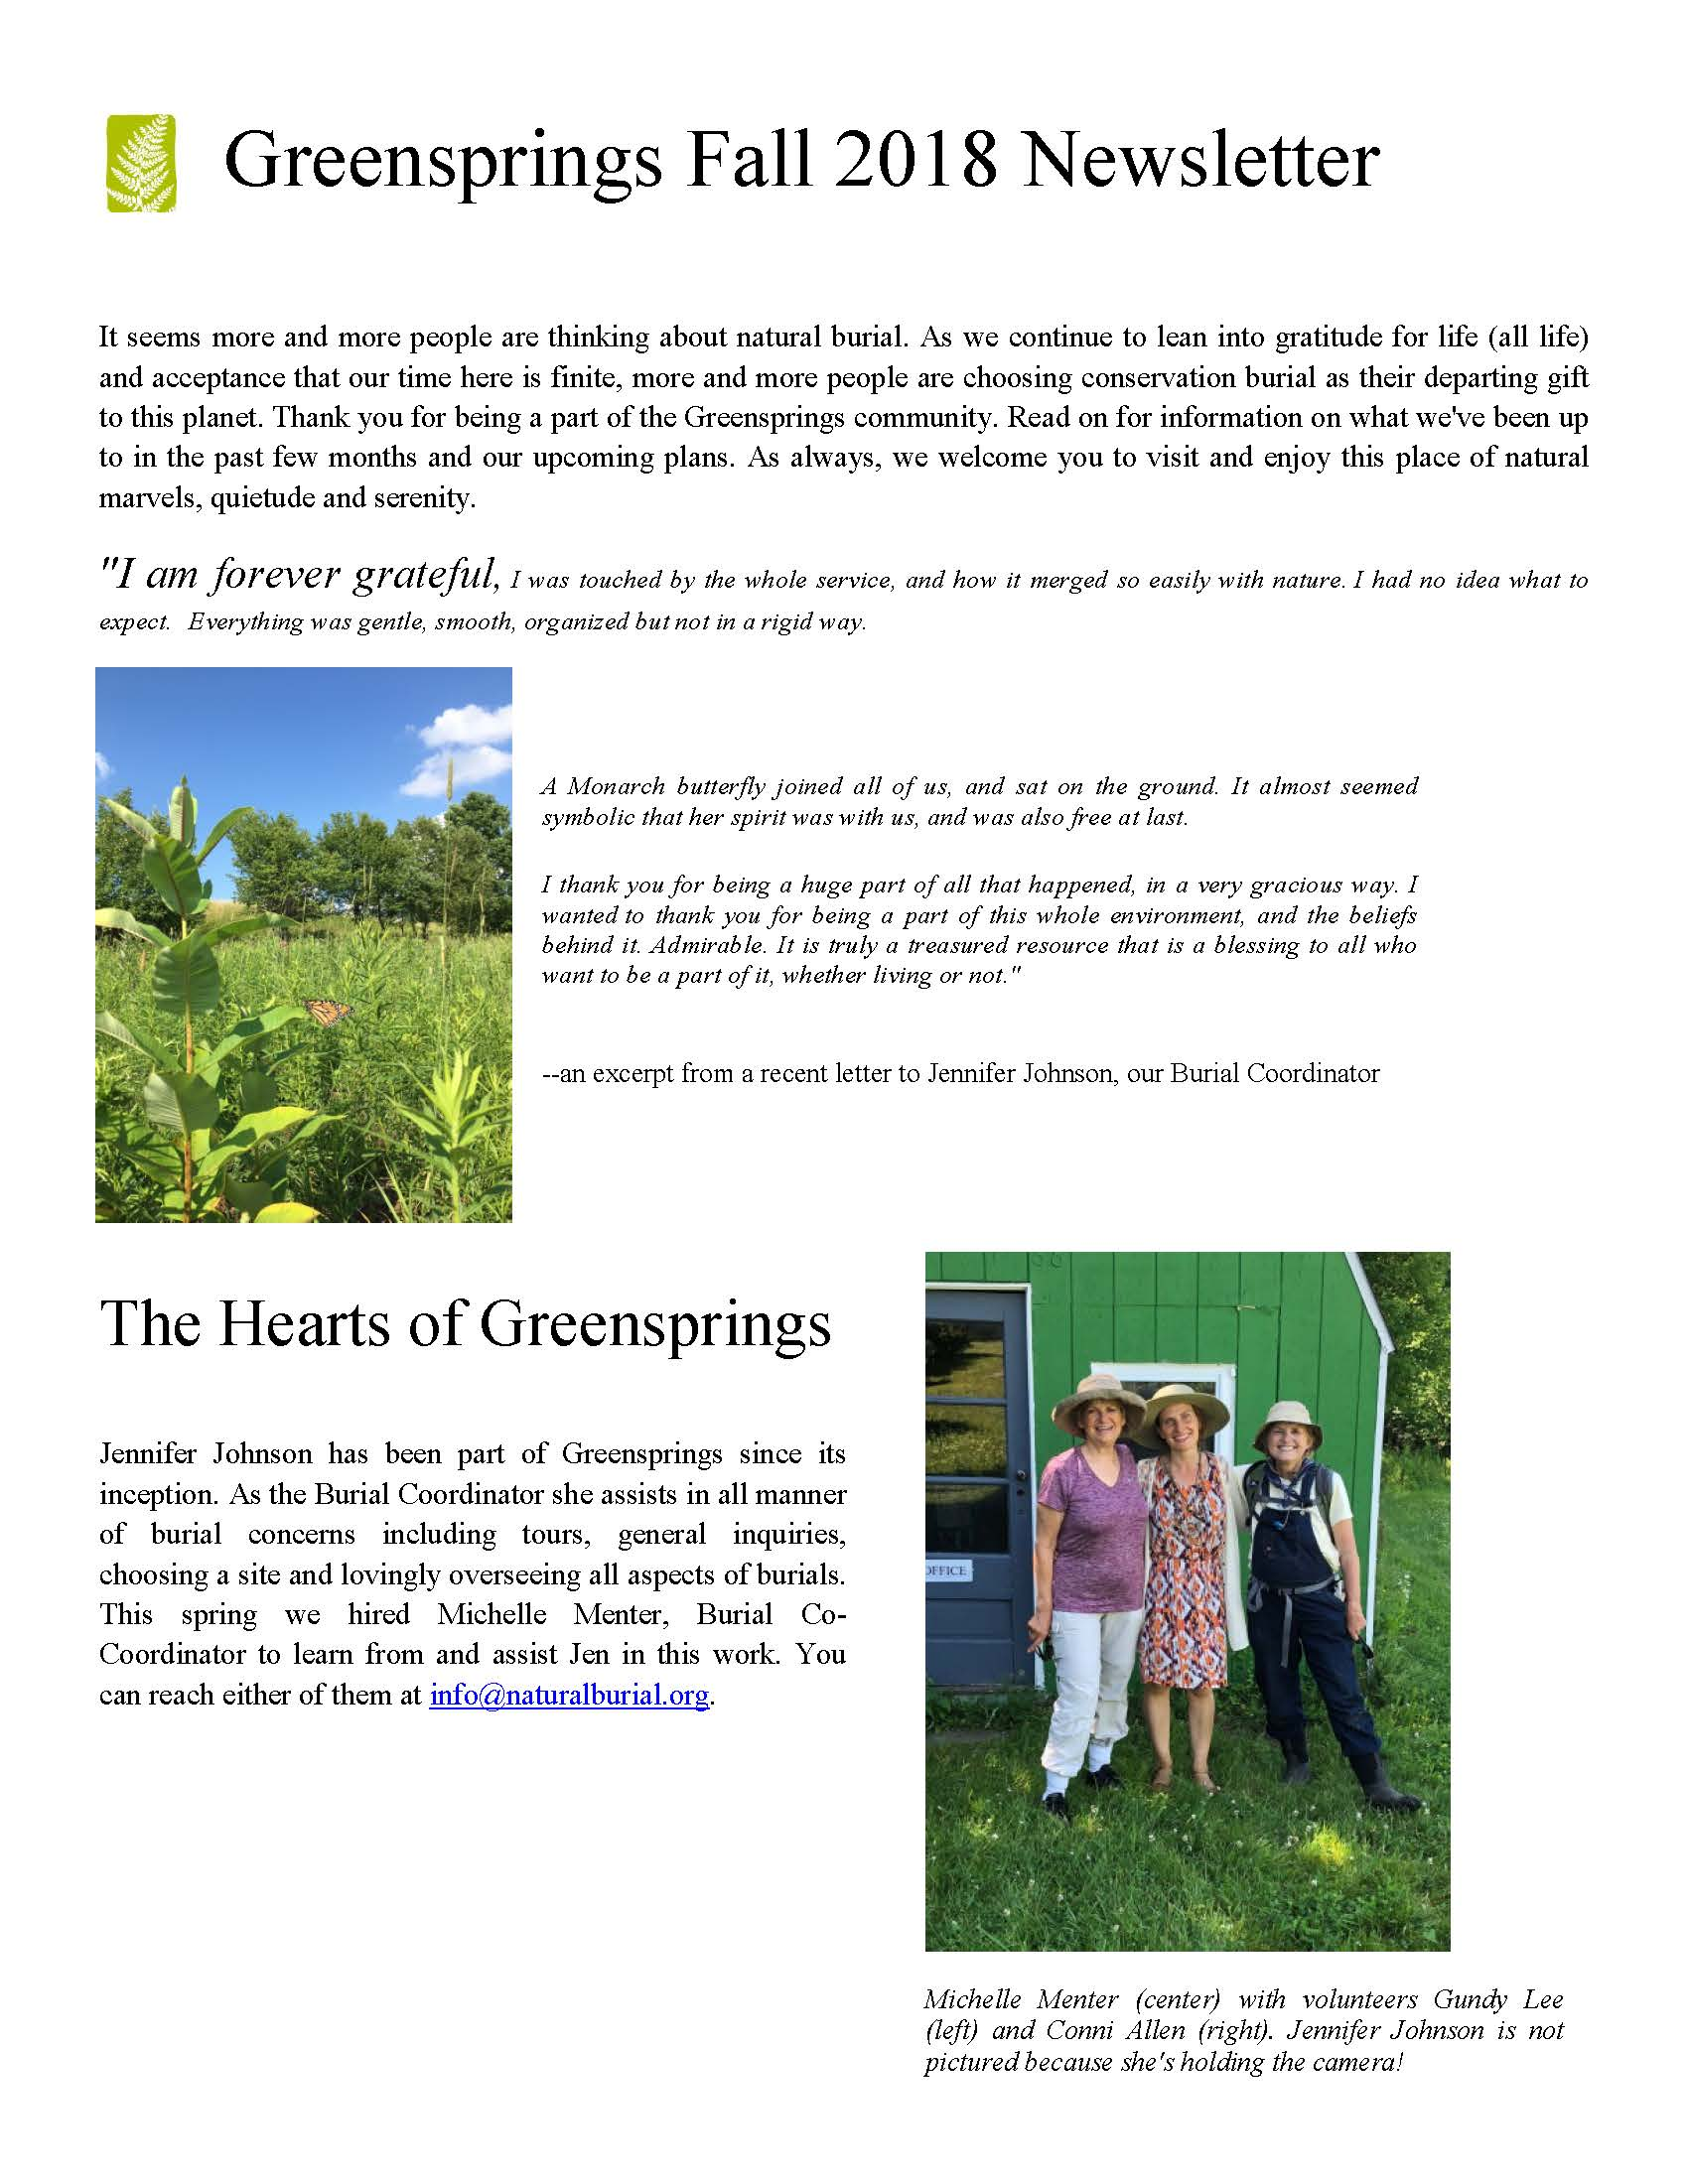 Greensprings Fall Newsletter 2018_Page_1.jpg